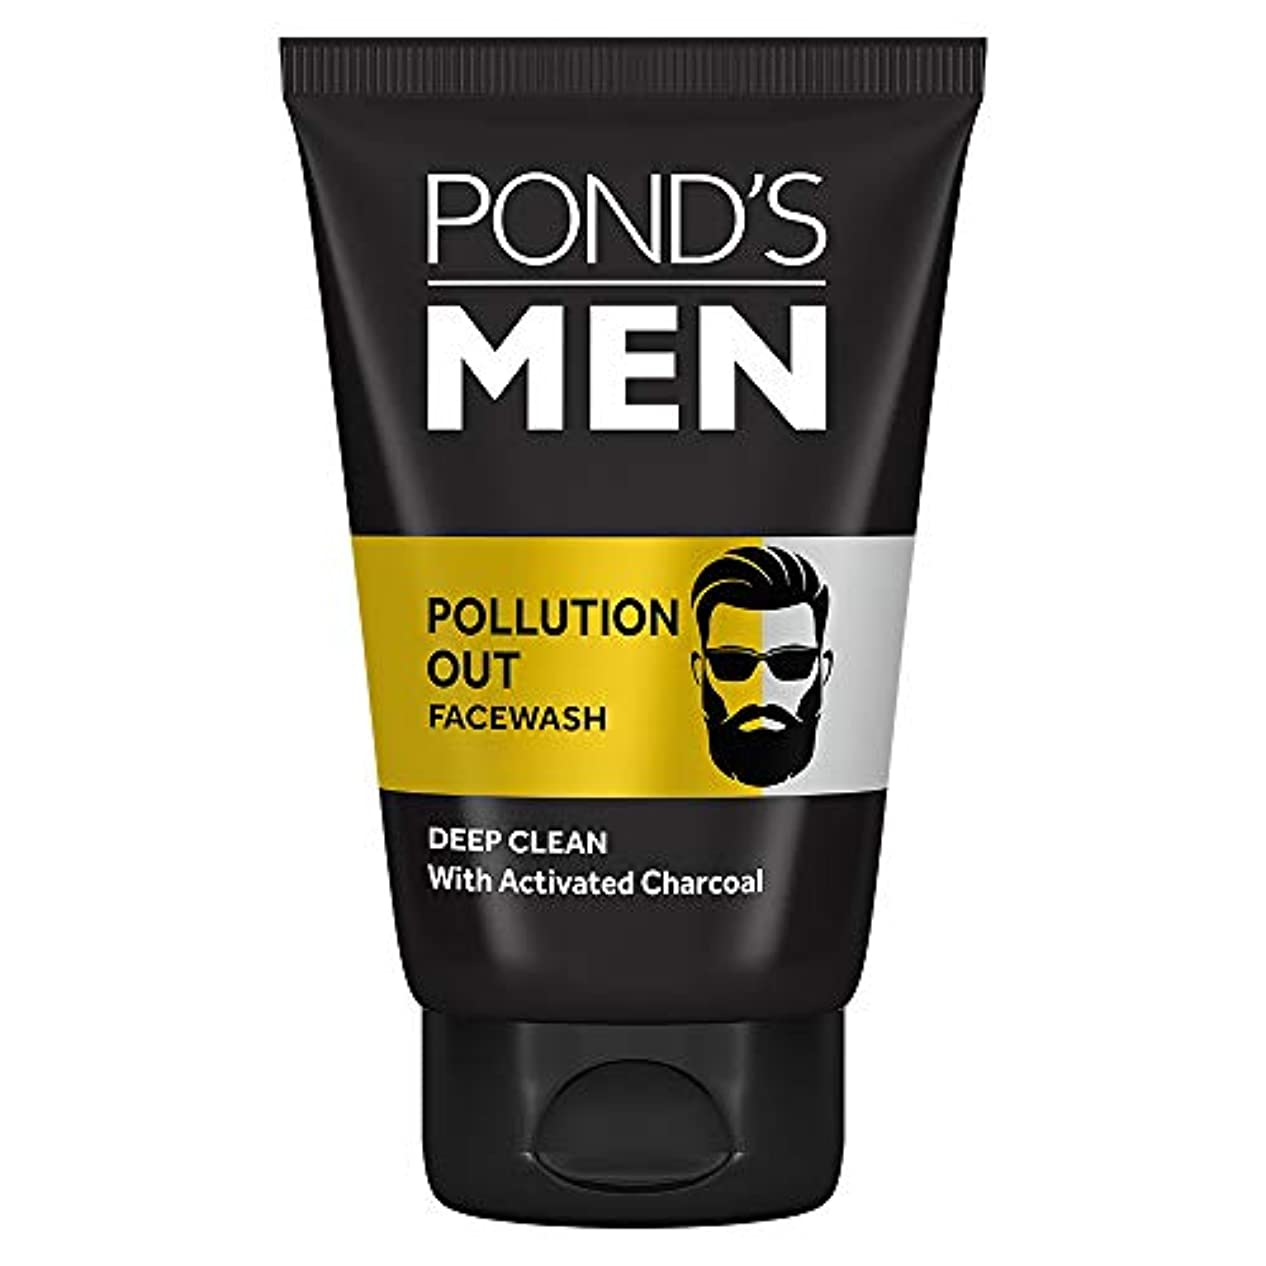 荒野対角線嵐Pond's Men Pollution Out Activated Charcoal Deep Clean Facewash, 50 g